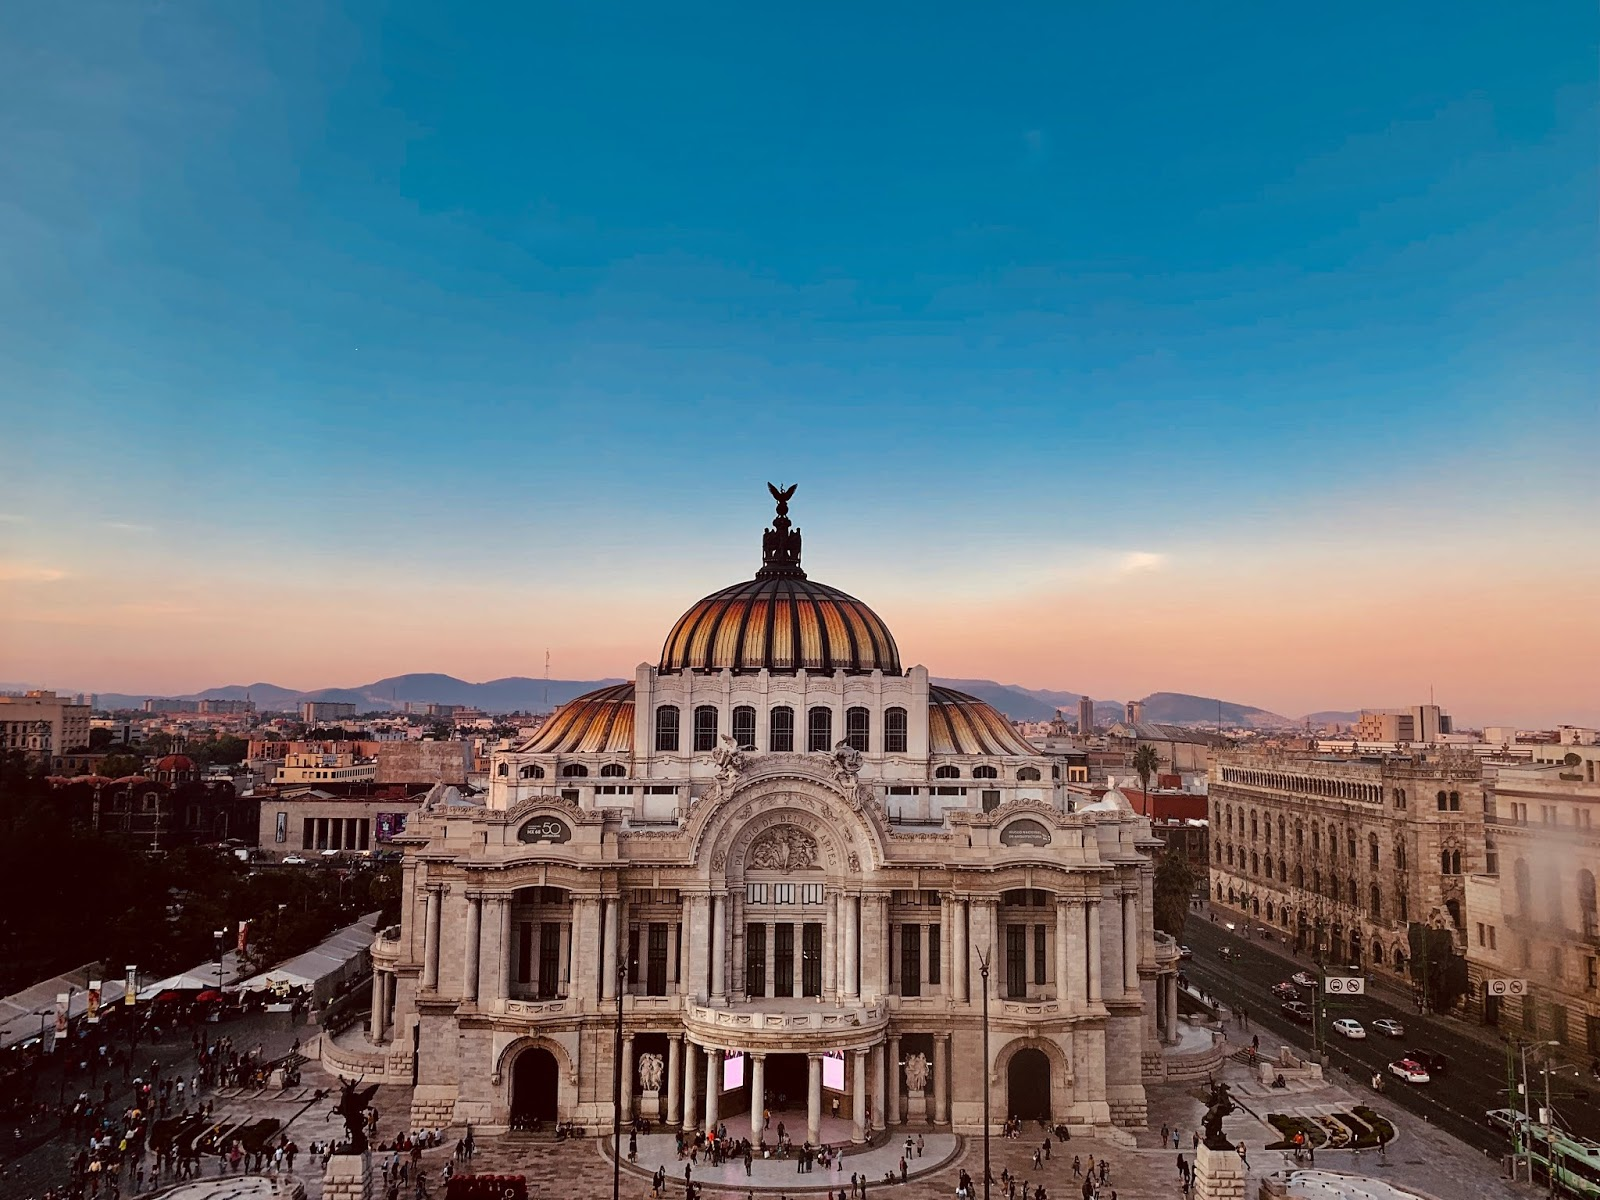 An arial view overlooking the square of Palacio de Bellas Artes